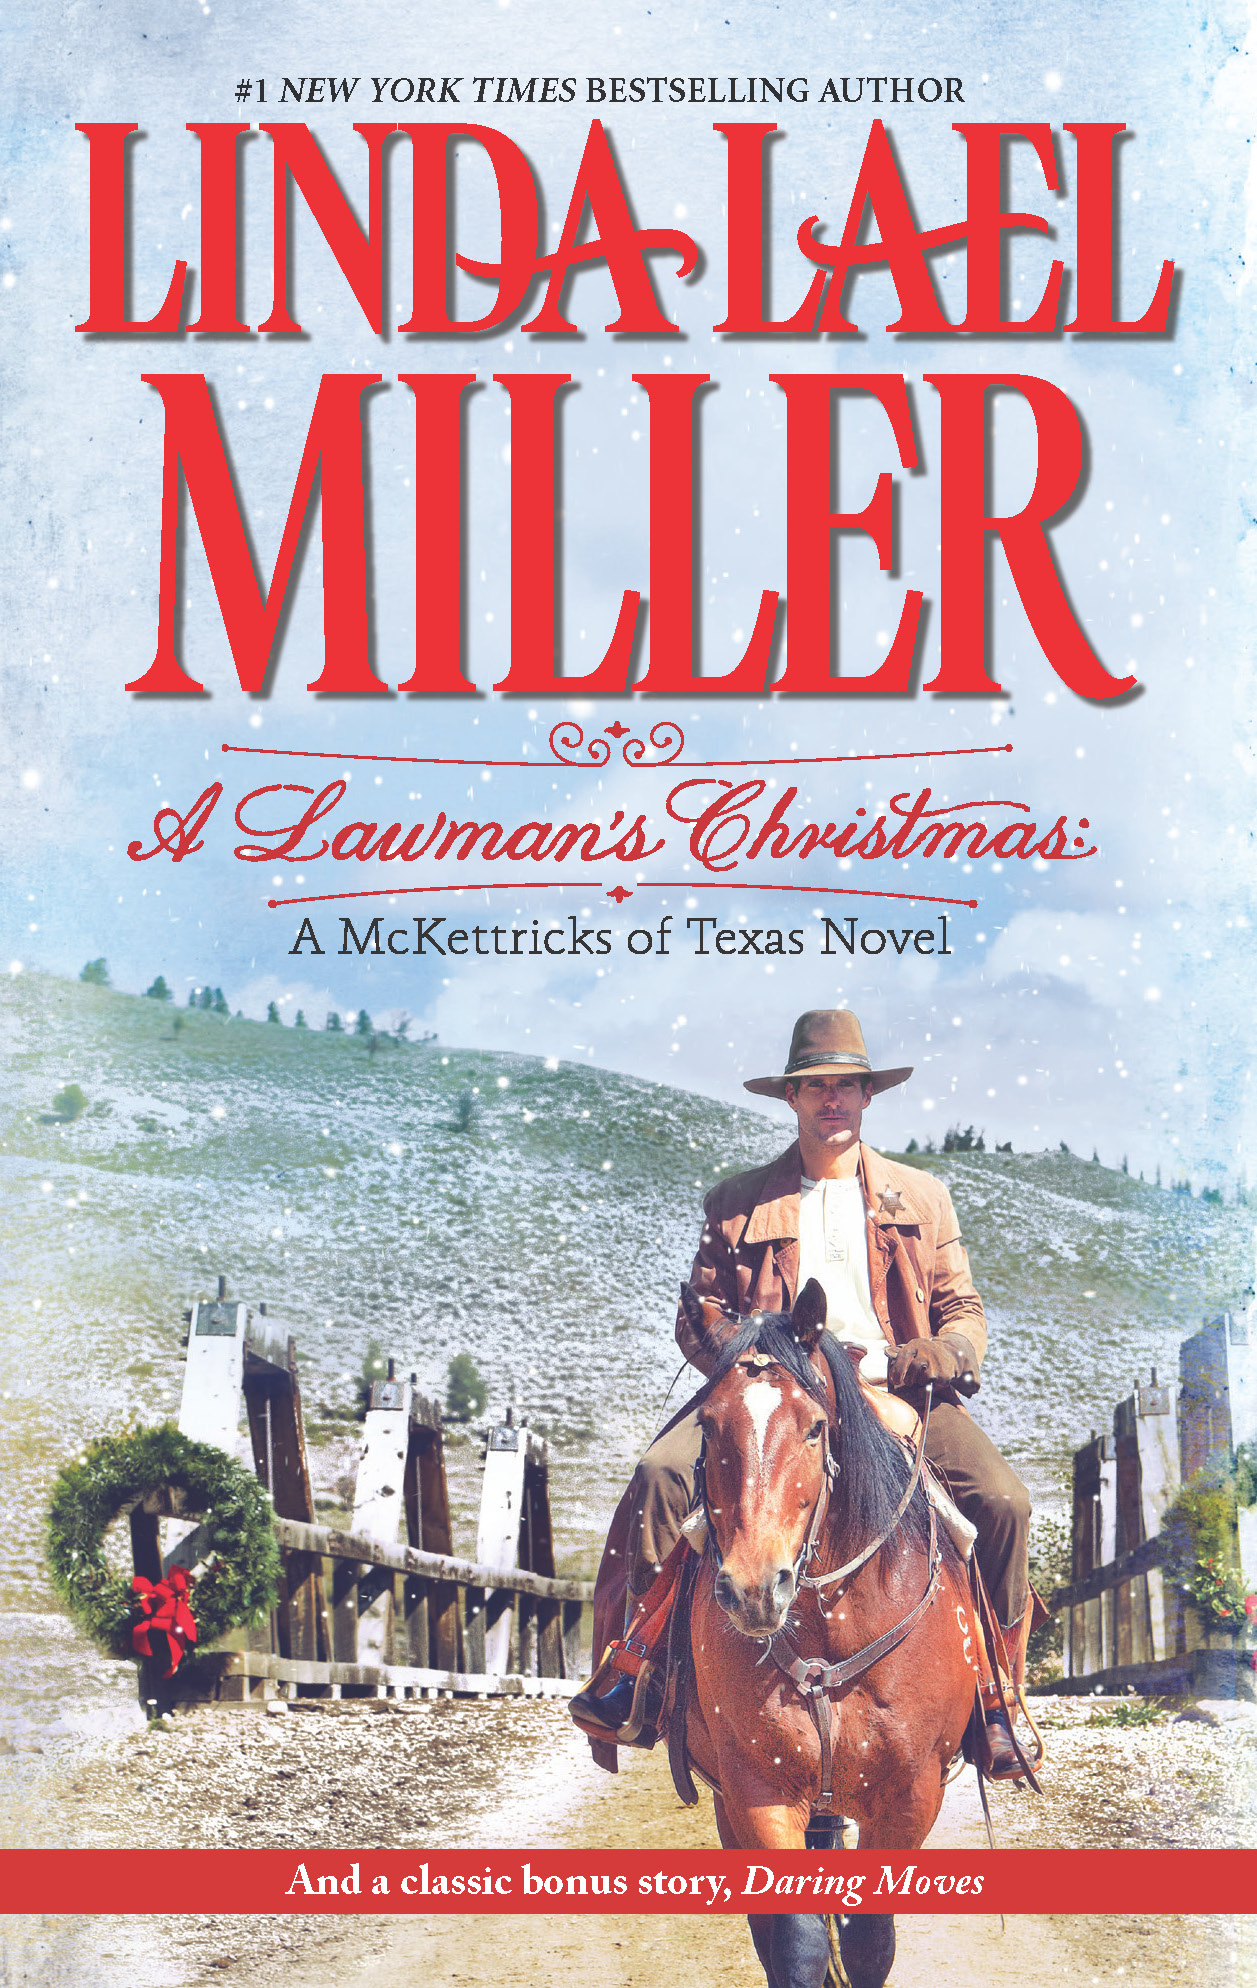 A Lawman's Christmas: A McKettricks of Texas Novel: A Lawman's Christmas\Daving Moves By: Linda Lael Miller